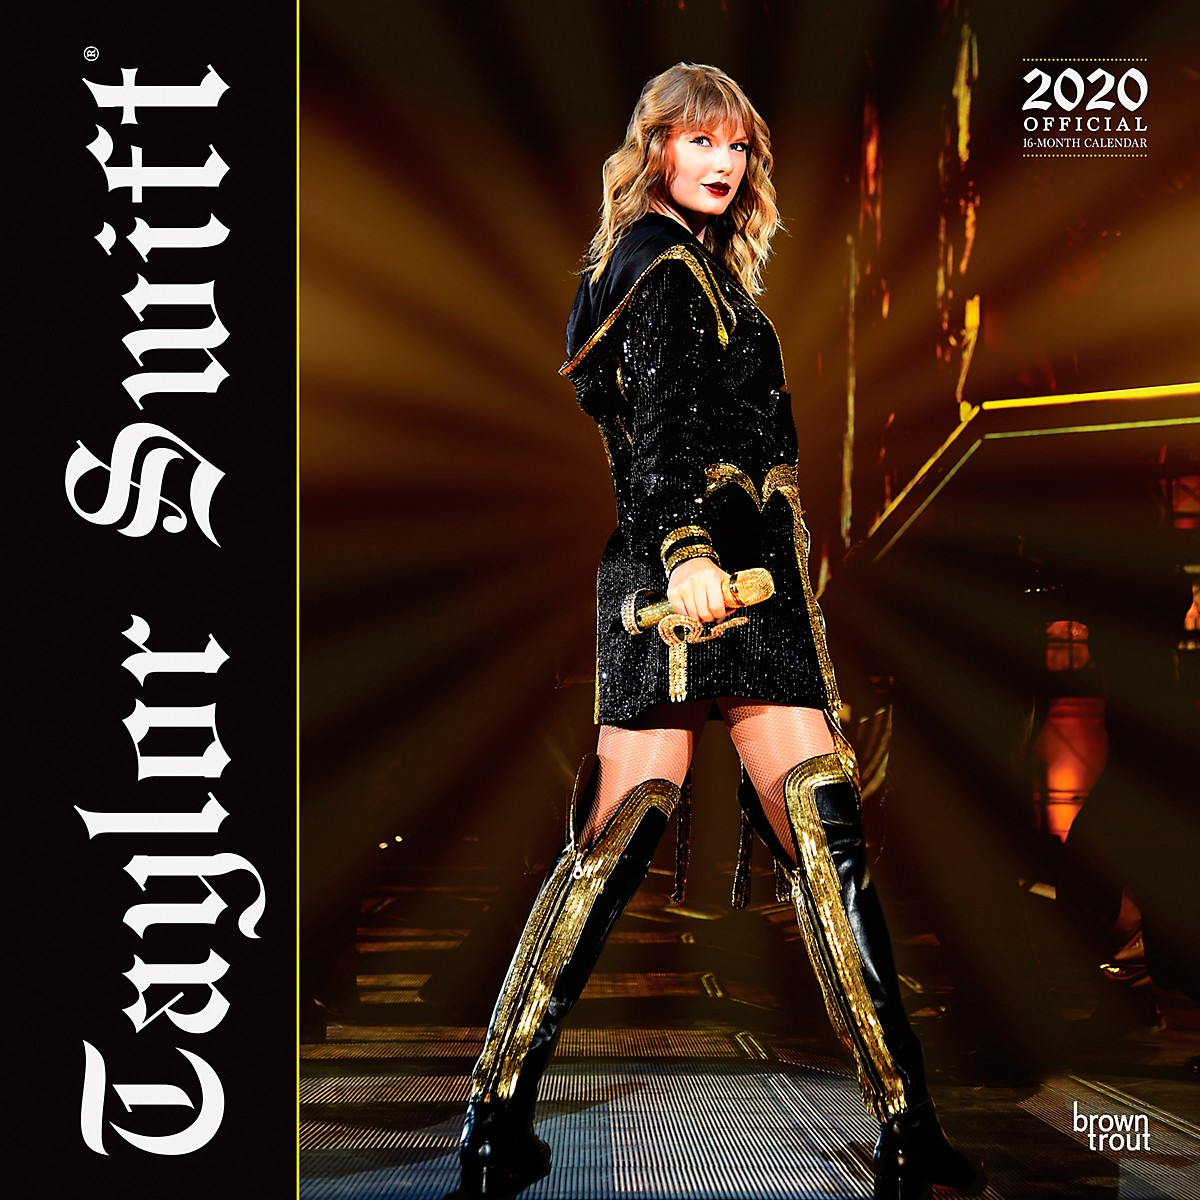 Browntrout Publishing Taylor Swift 2020 Calendar